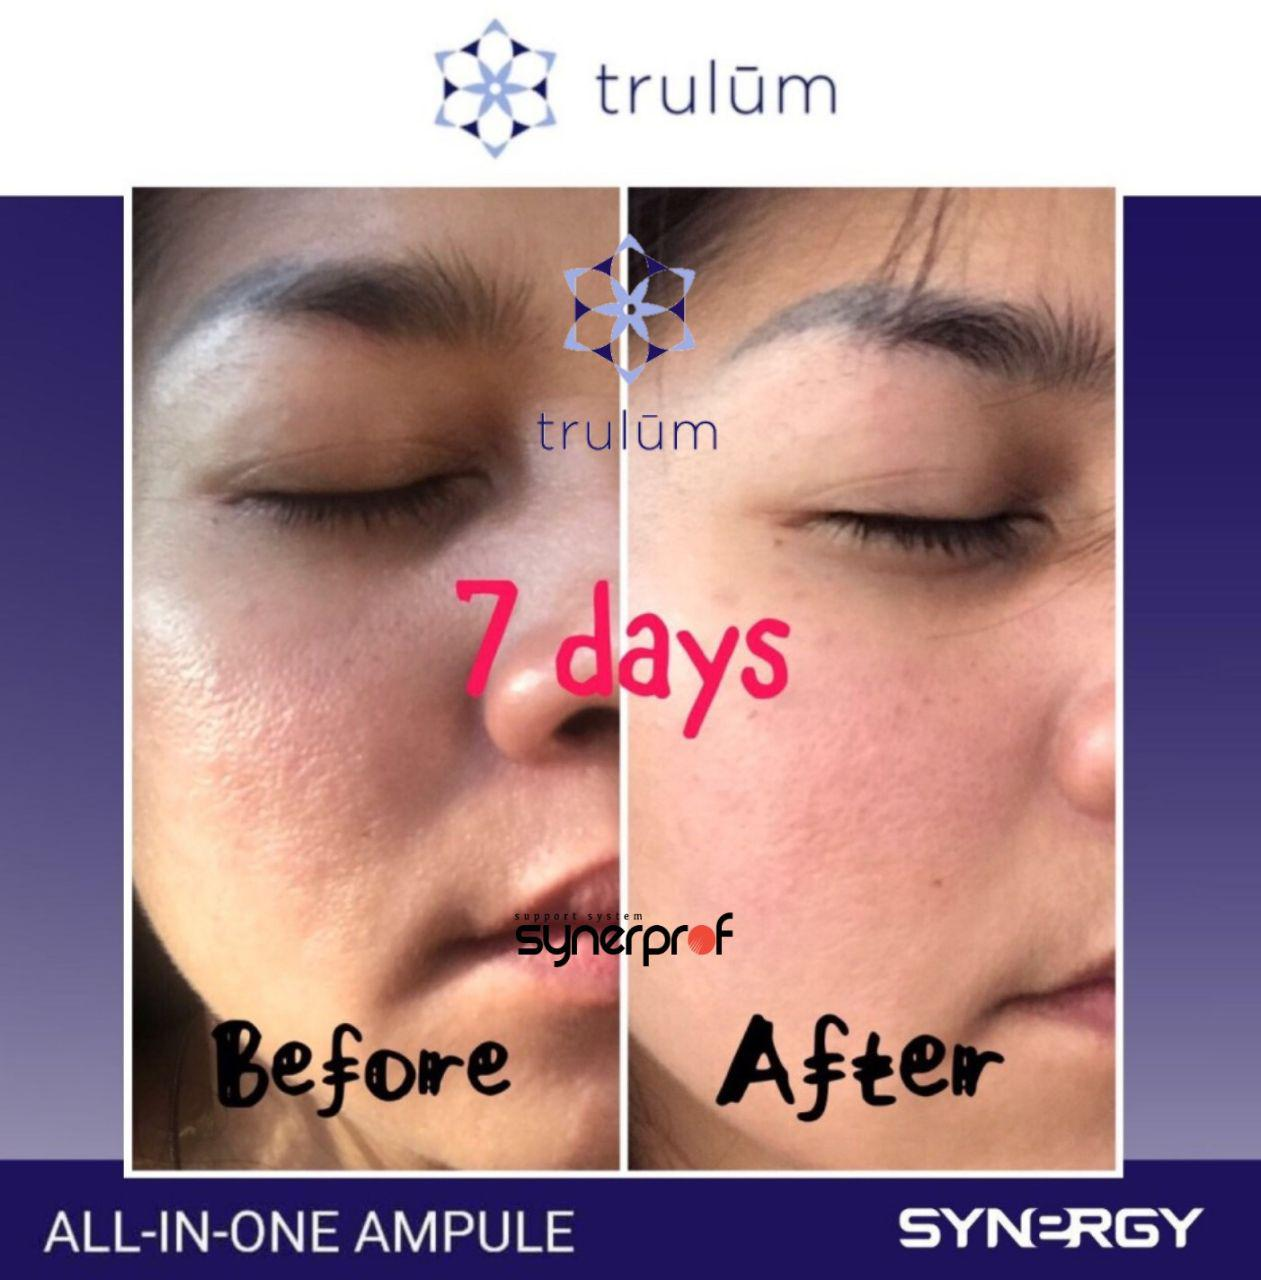 Jual Trulum All In One Ampoule Di Nasal, Kaur WA: 08112338376